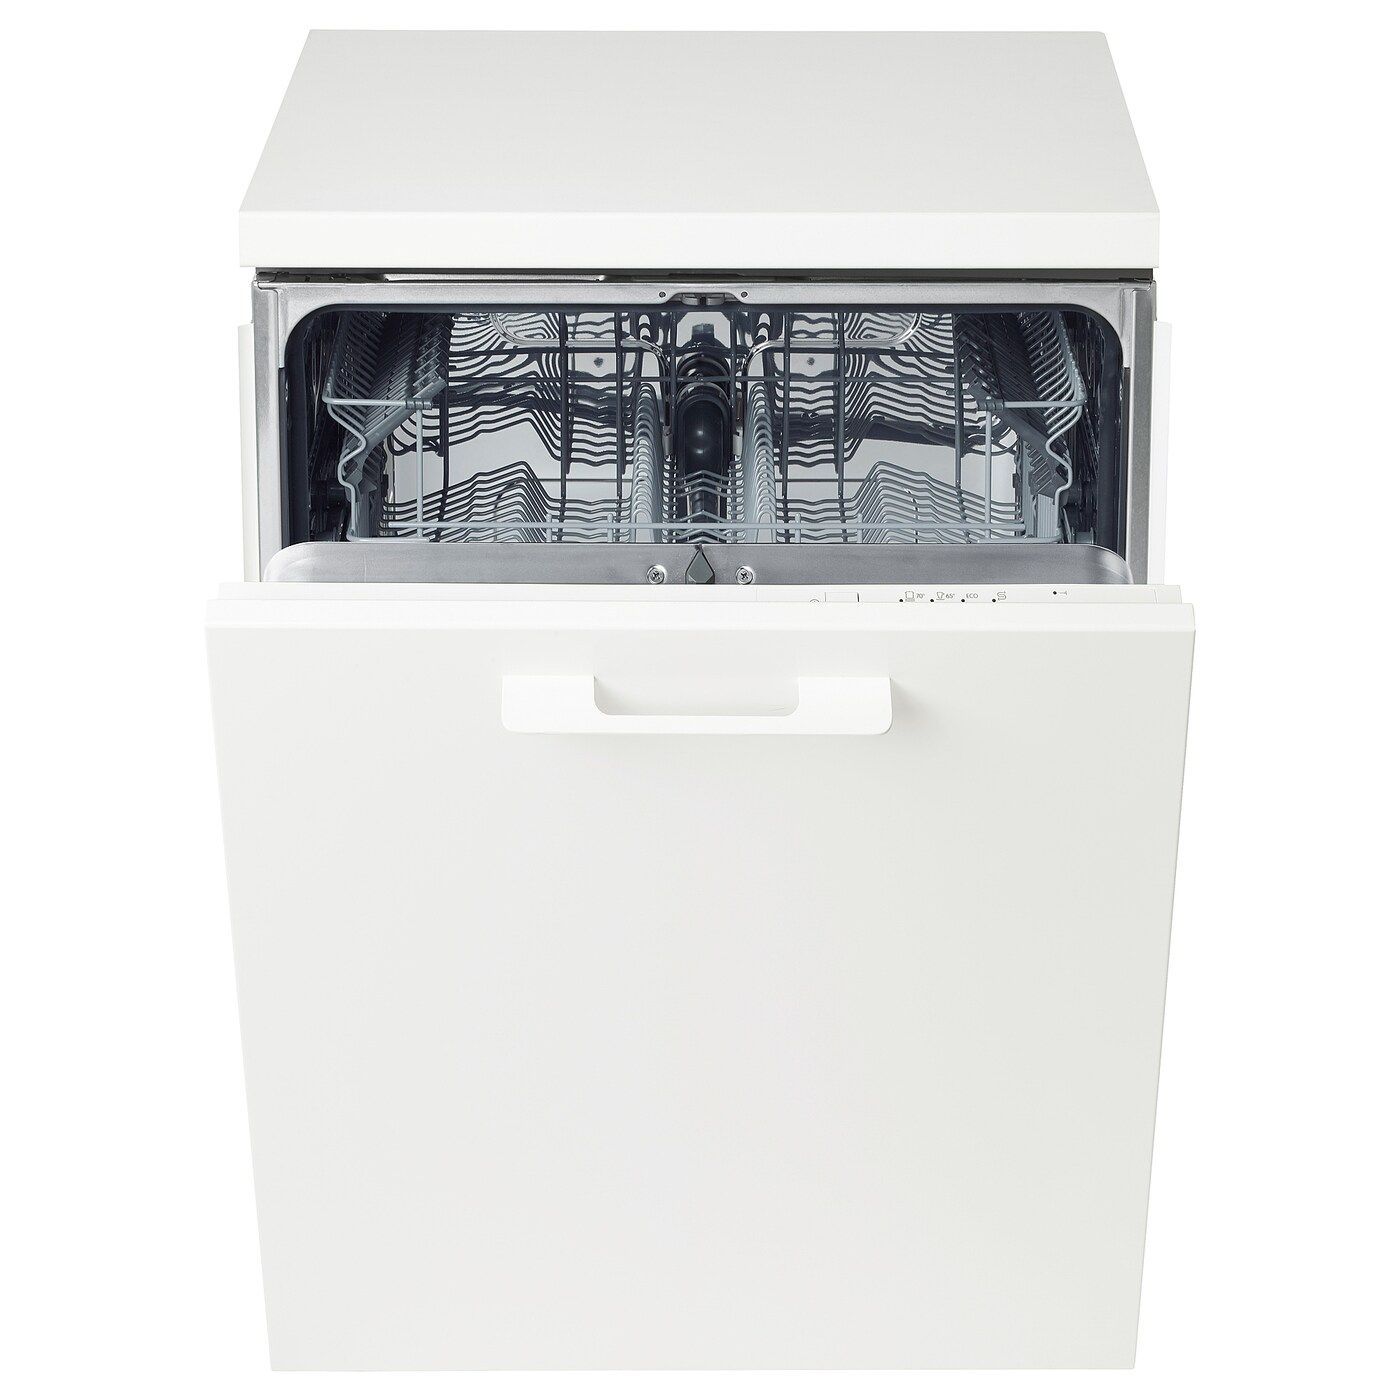 Lagan Lave Vaisselle Encastrable Blanc In 2020 Integrated Dishwasher Ikea Ikea Home